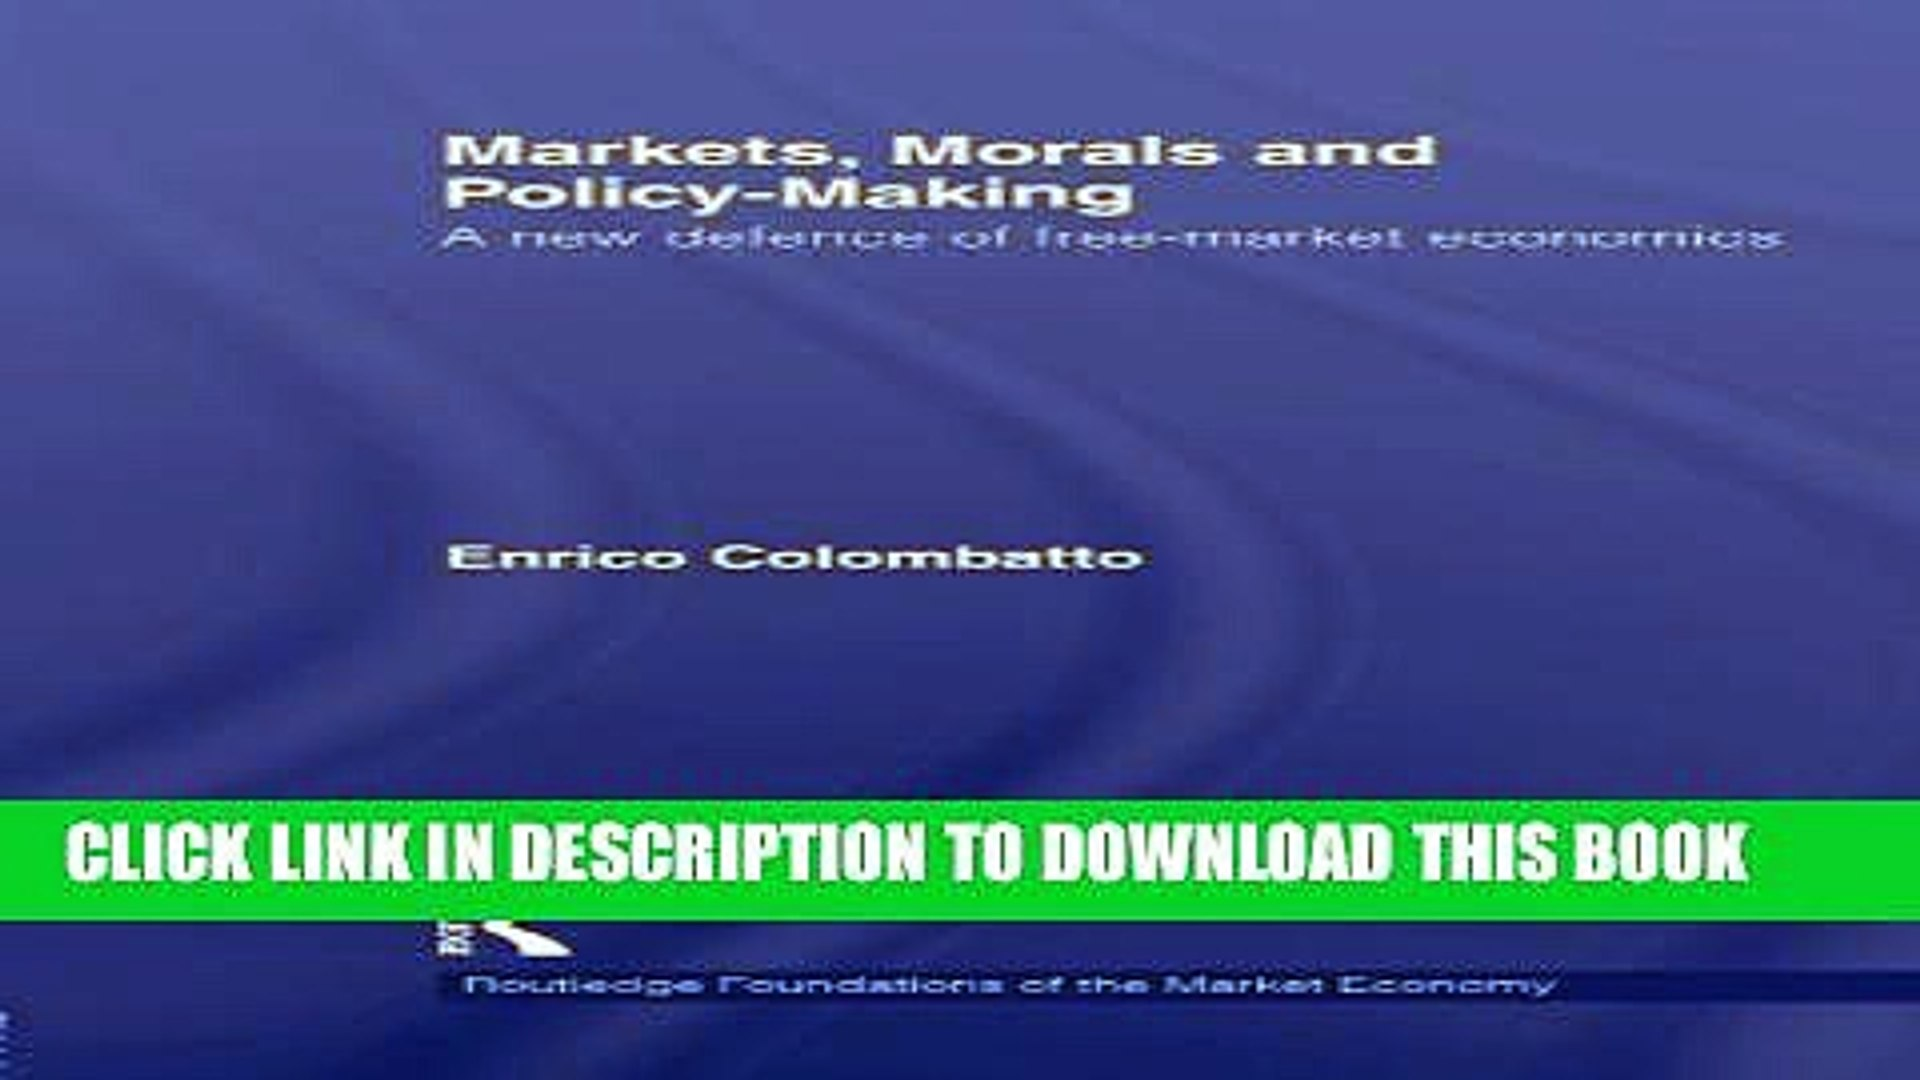 New Book Markets, Morals, and Policy-Making: A New Defence of Free-Market Economics (Routledge